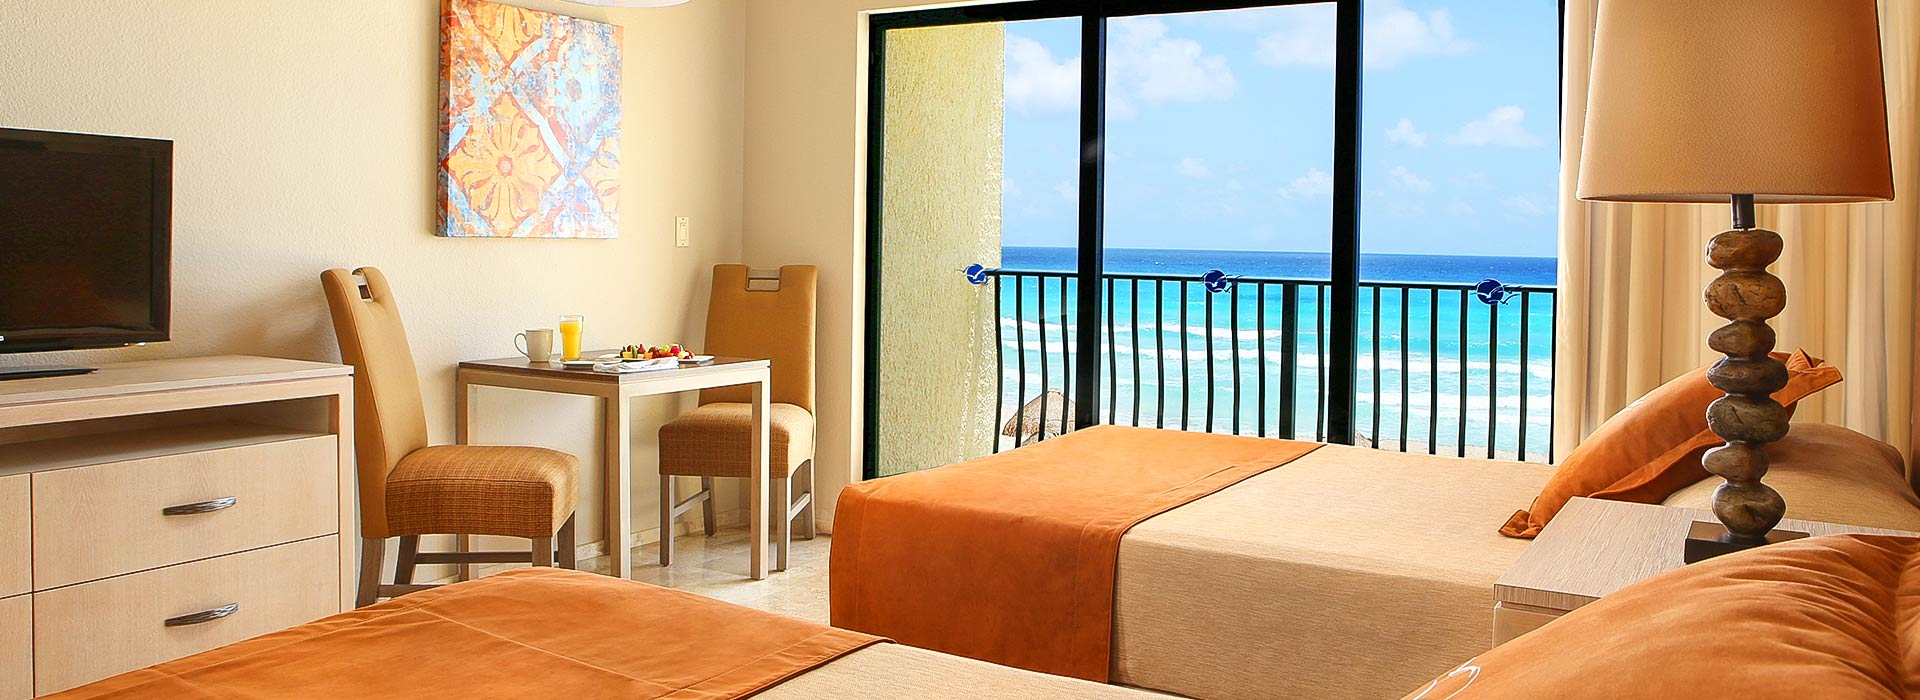 Cancun Beachfront Resorts Amp Villas The Royal Sands Rooms